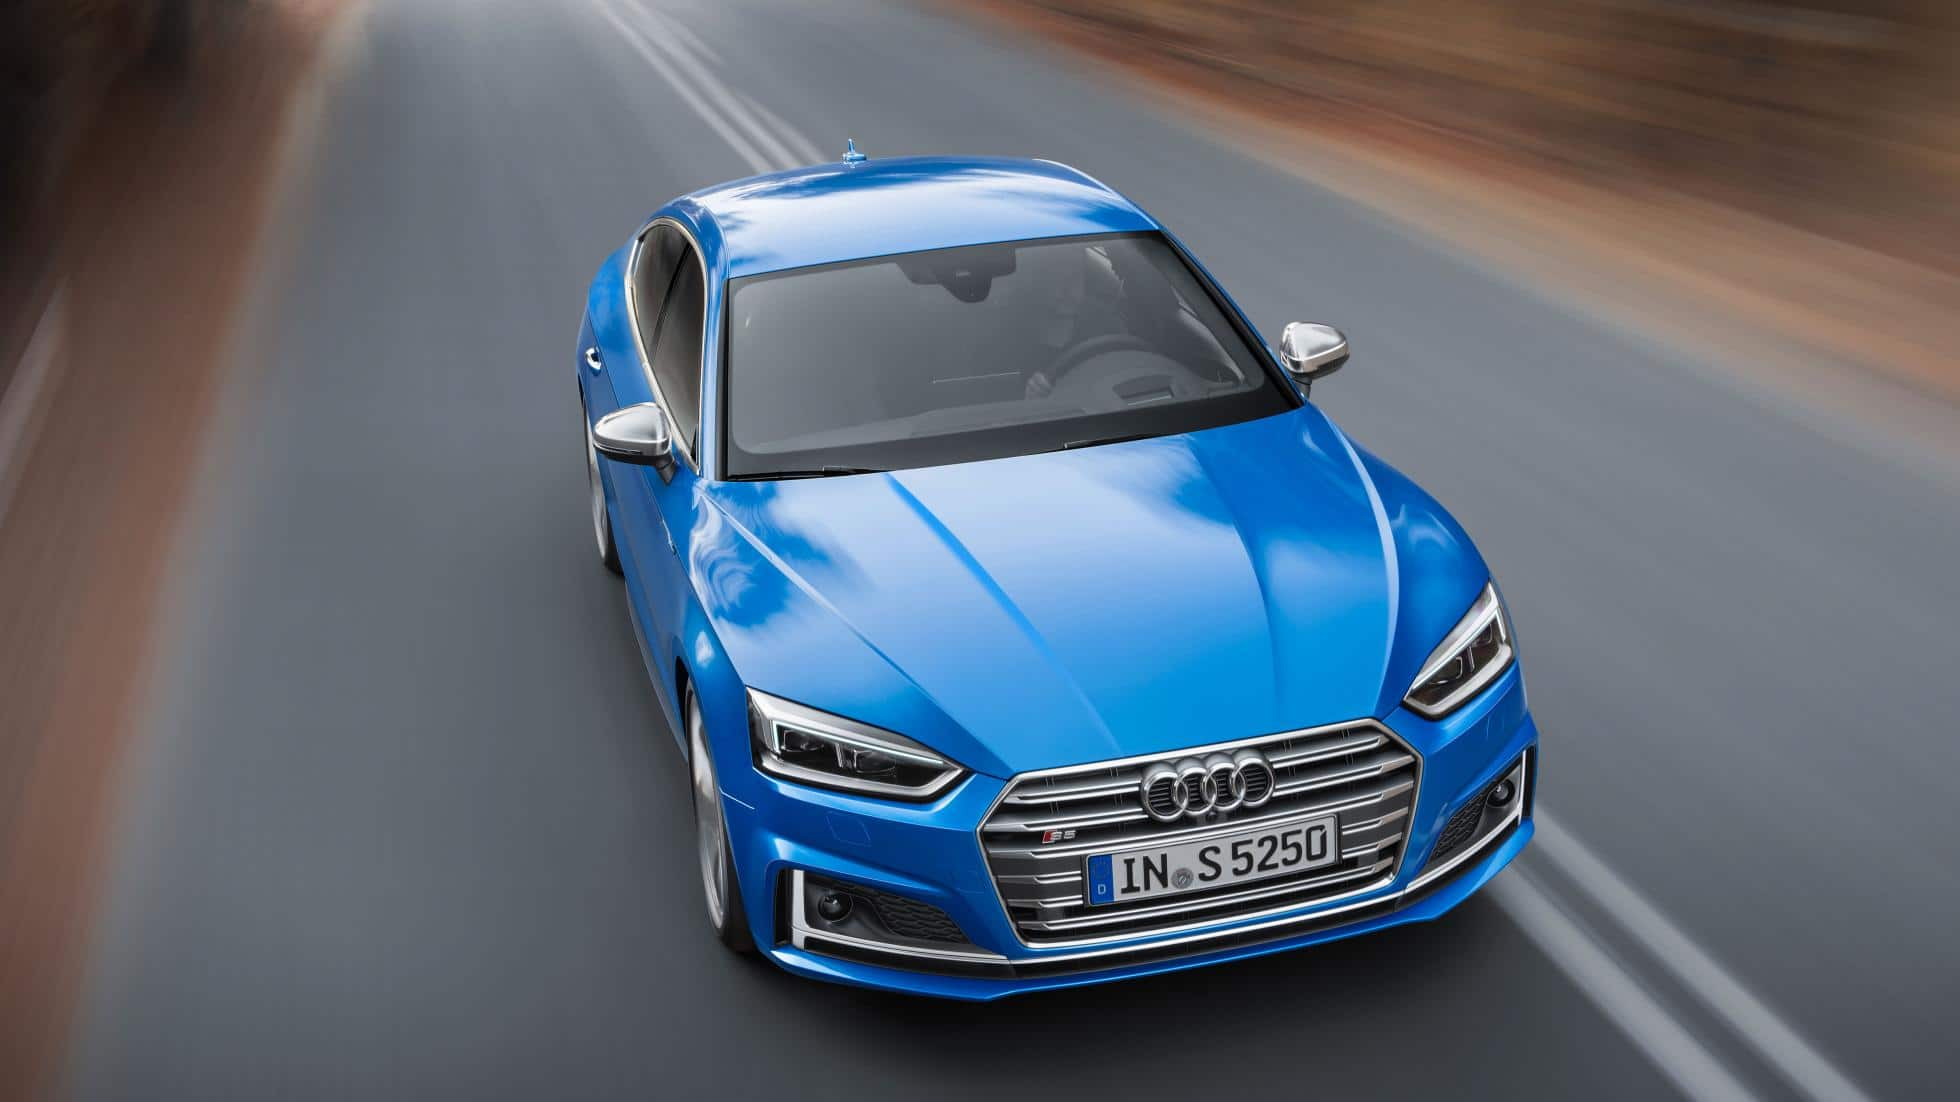 Audi Reveals A5 and S5 Sportsback in Latest Images